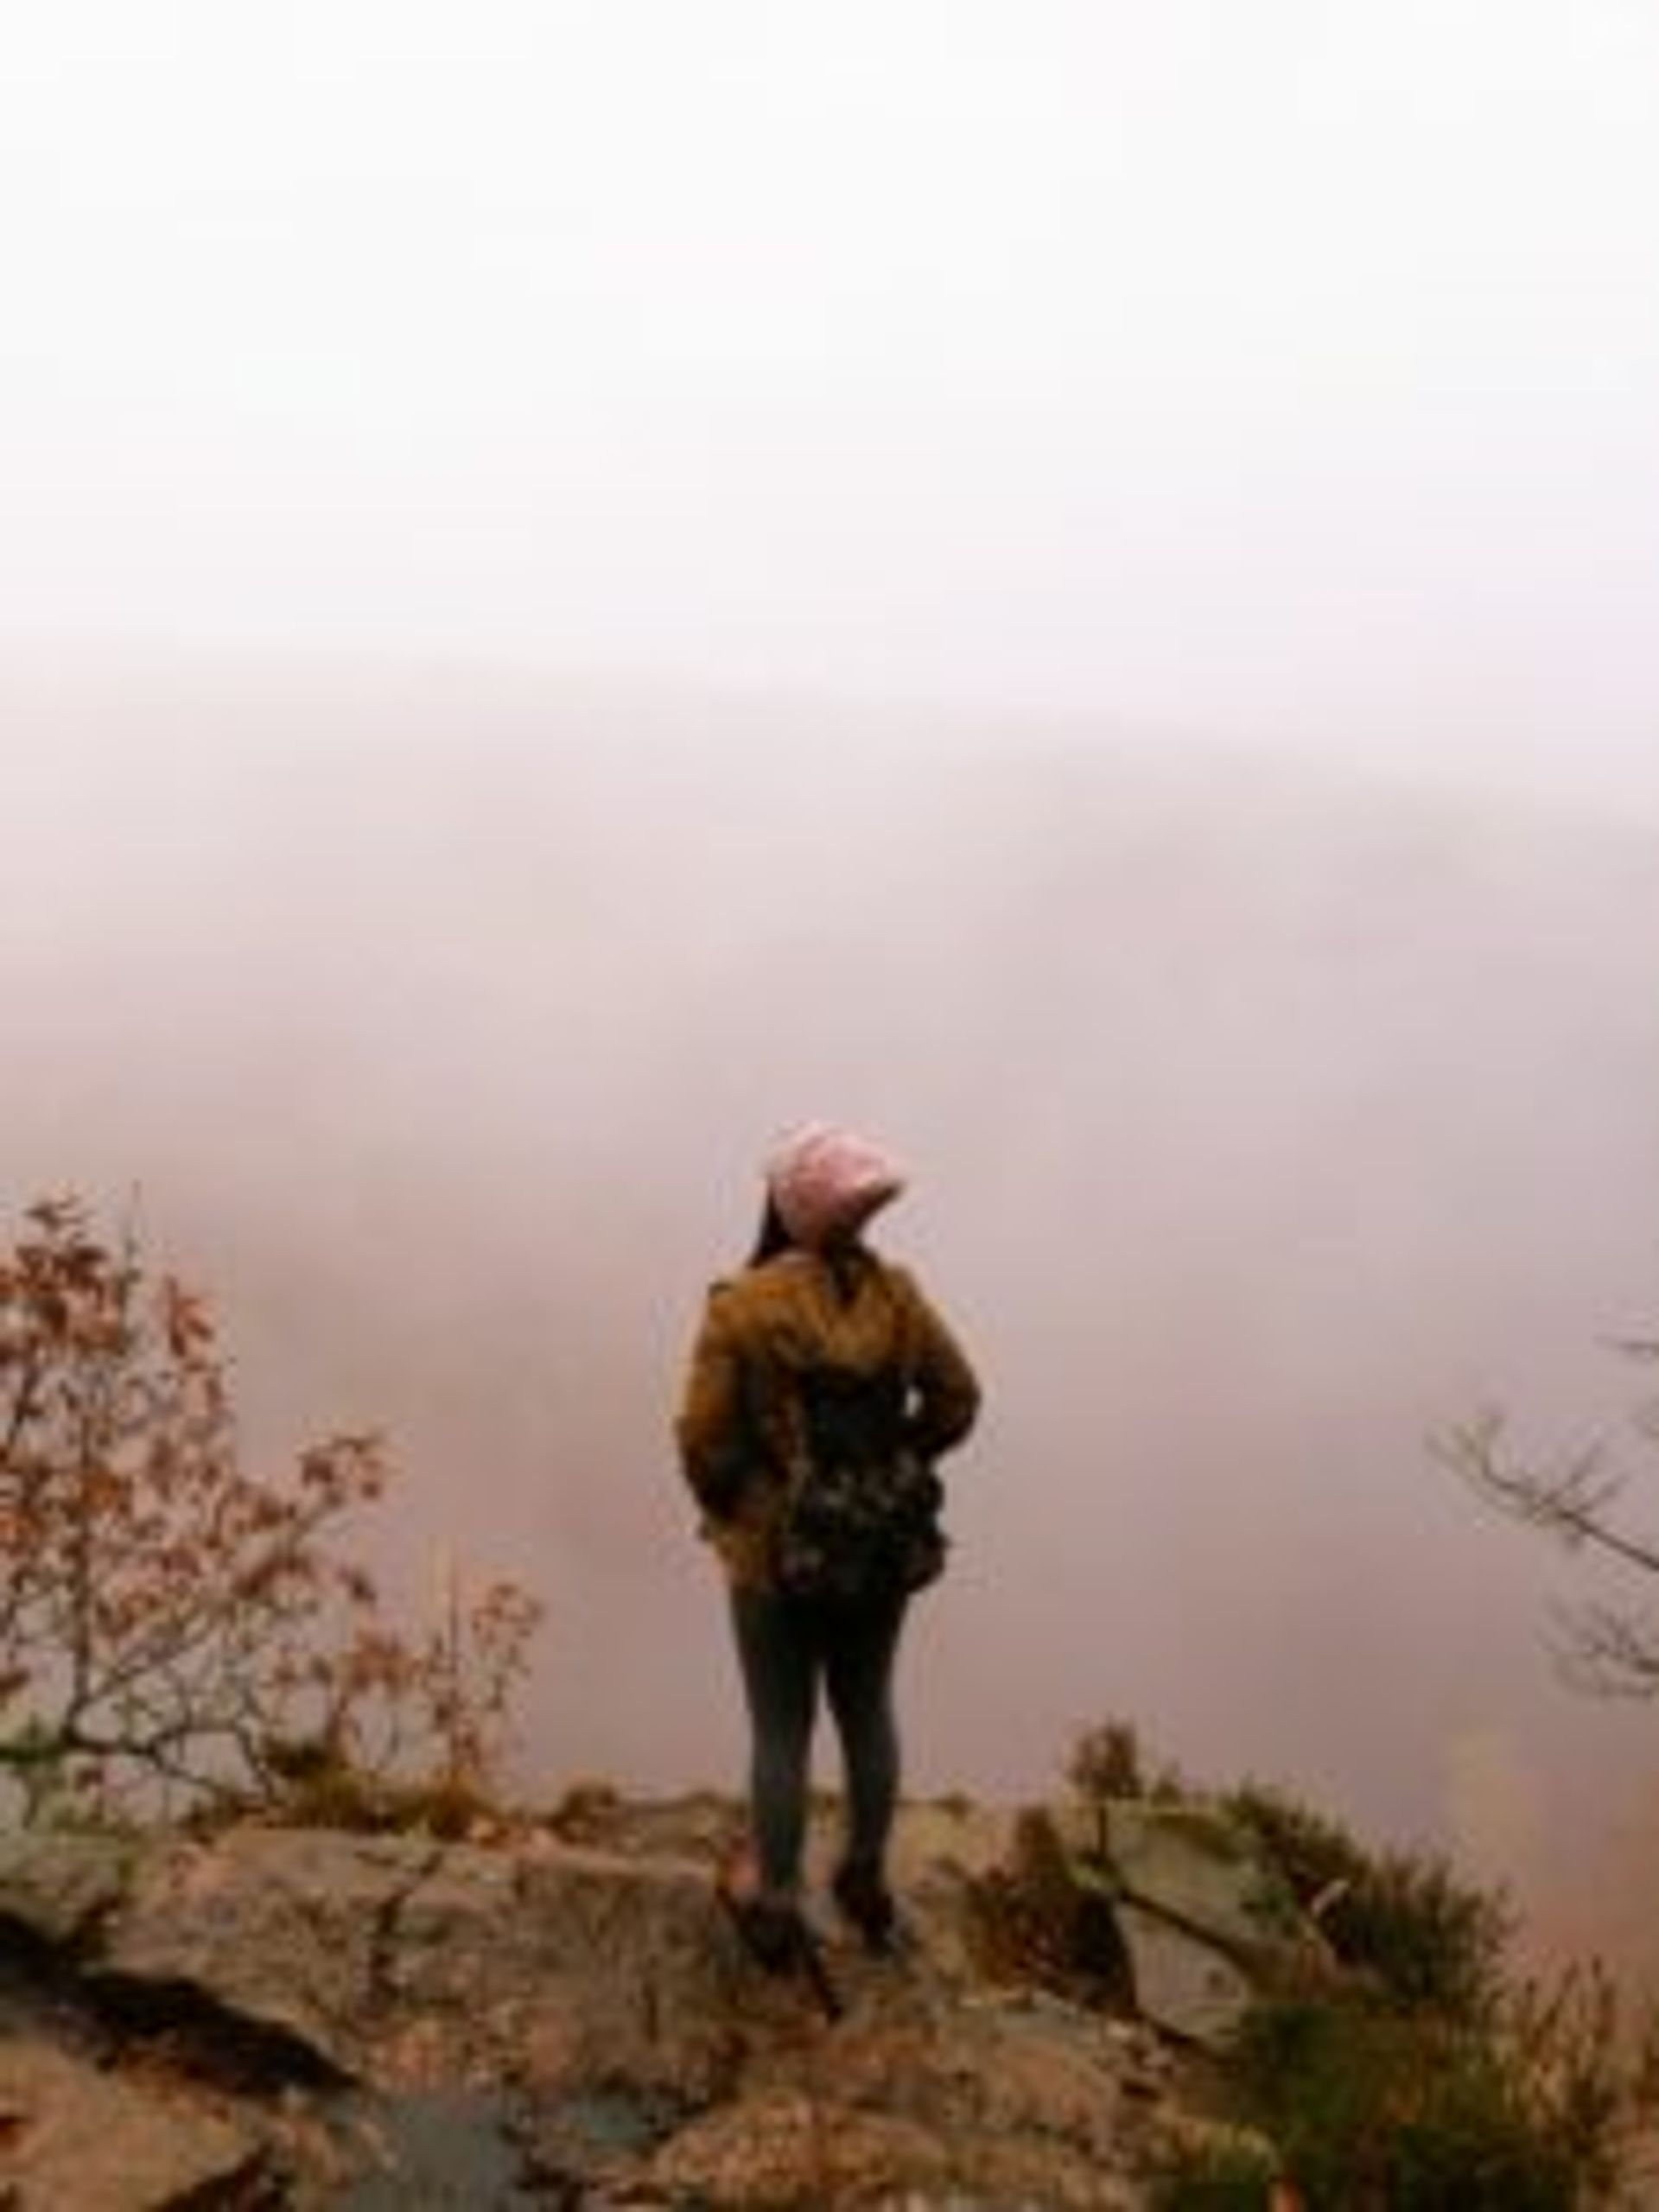 Nguyên standing on a cliff looking out over a misty valley.